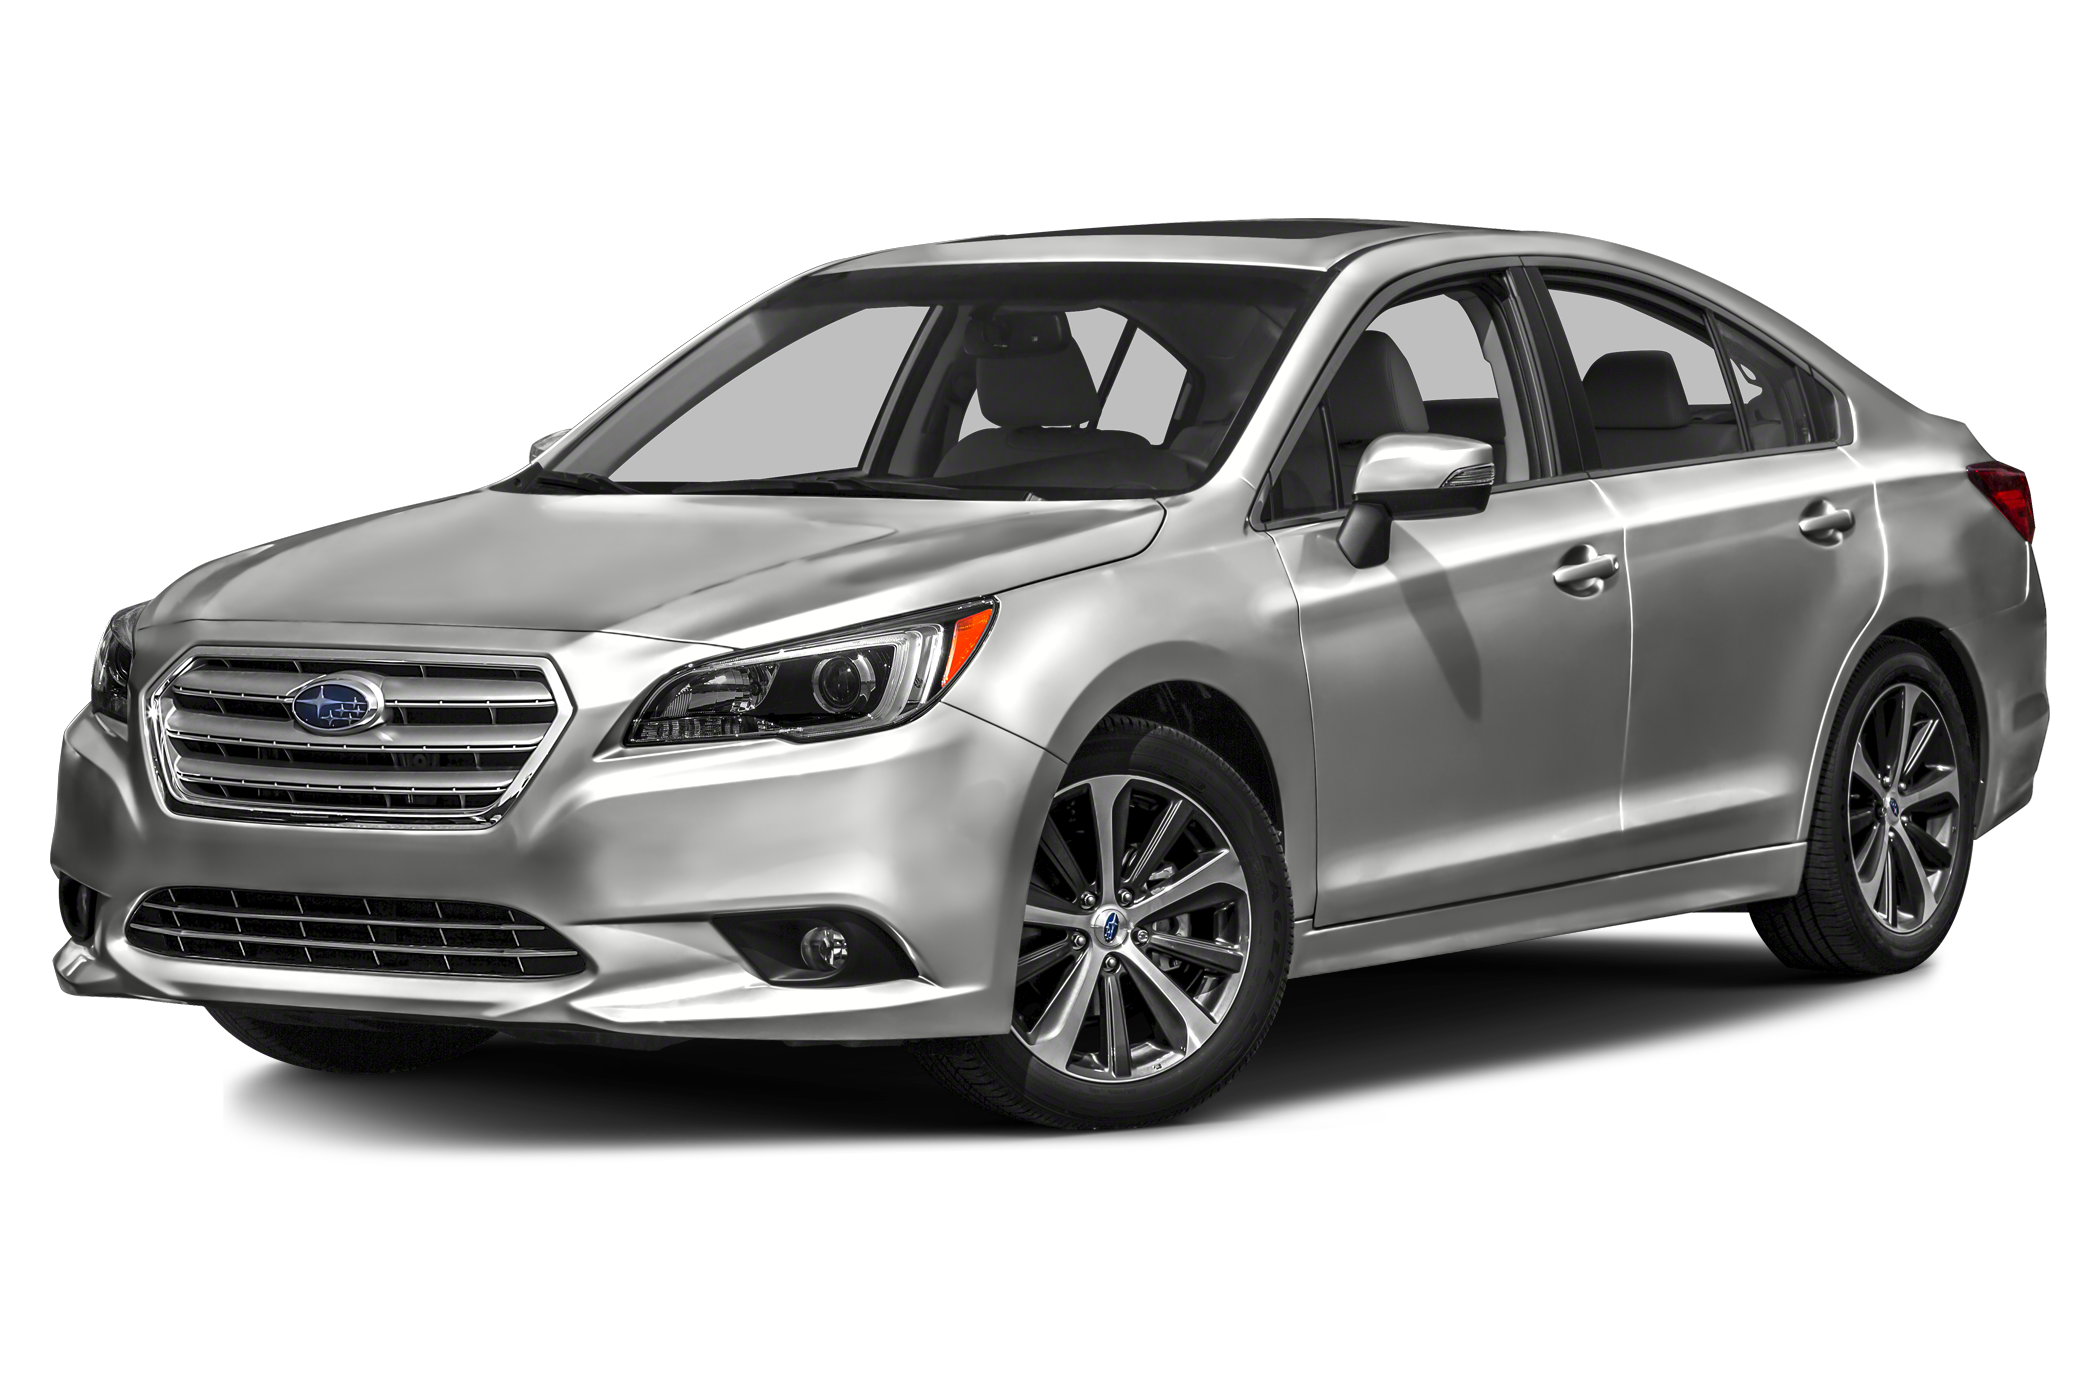 When Will The 2016 Subaru Legacy Be Available | 2017 ...